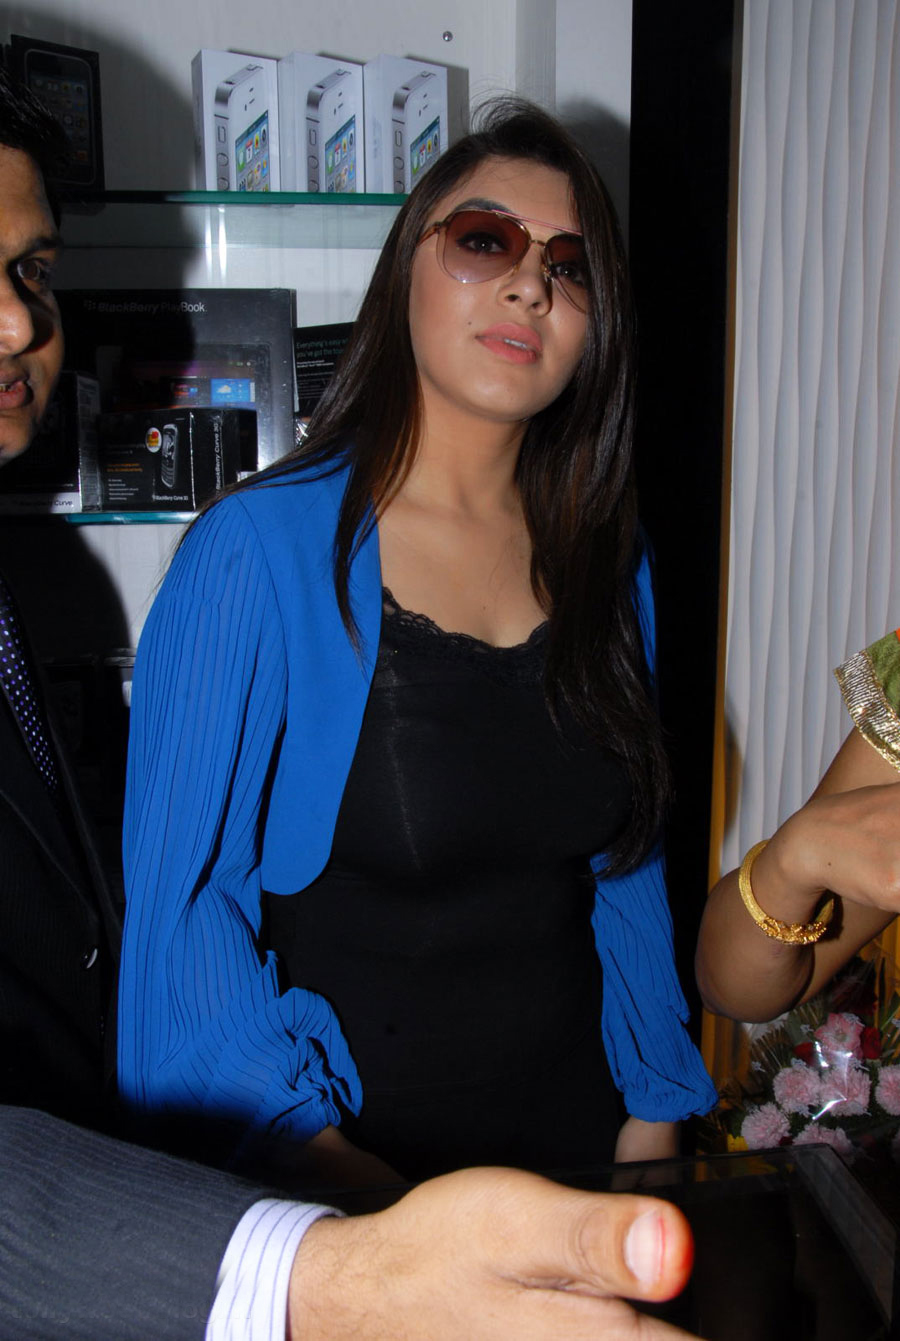 Hanshika Motwani in black top, blue jacket - Hanshika Motwani at Amori shop phone launch